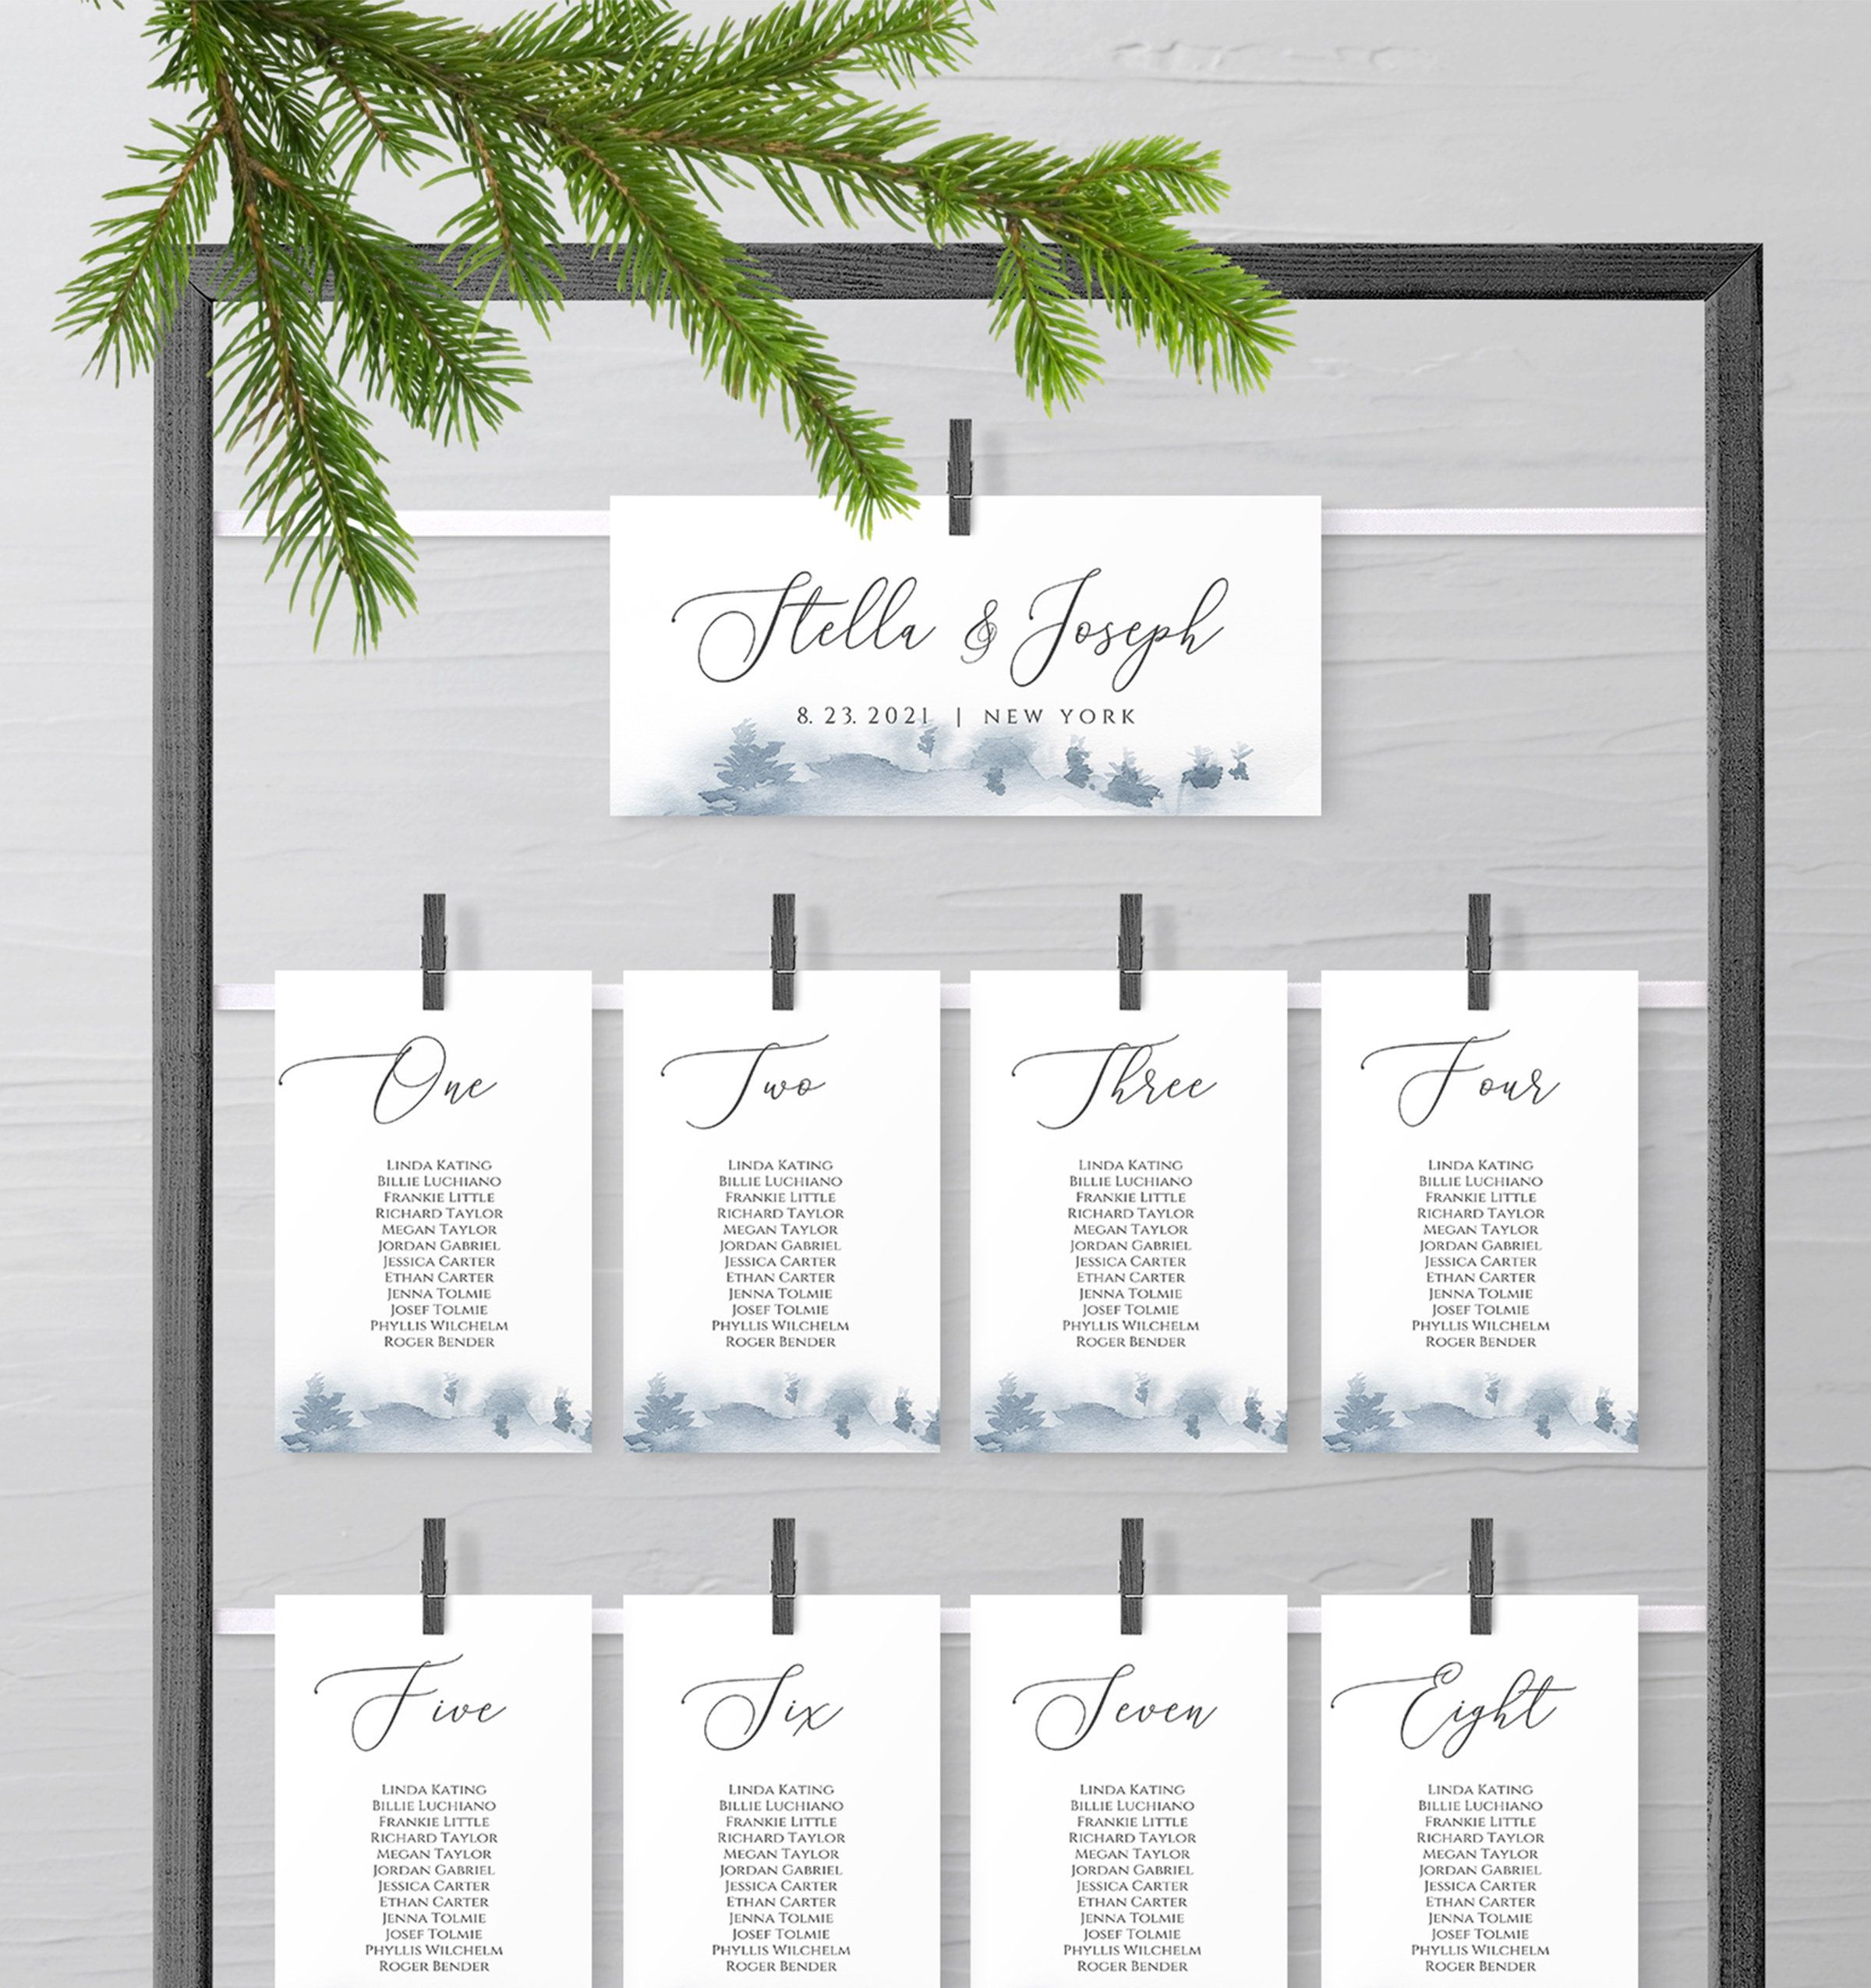 Pine Wedding Seating Chart Card Template Table Seating Chart Etsy Seating Chart Wedding Wedding Seating Printable Wedding Invitations